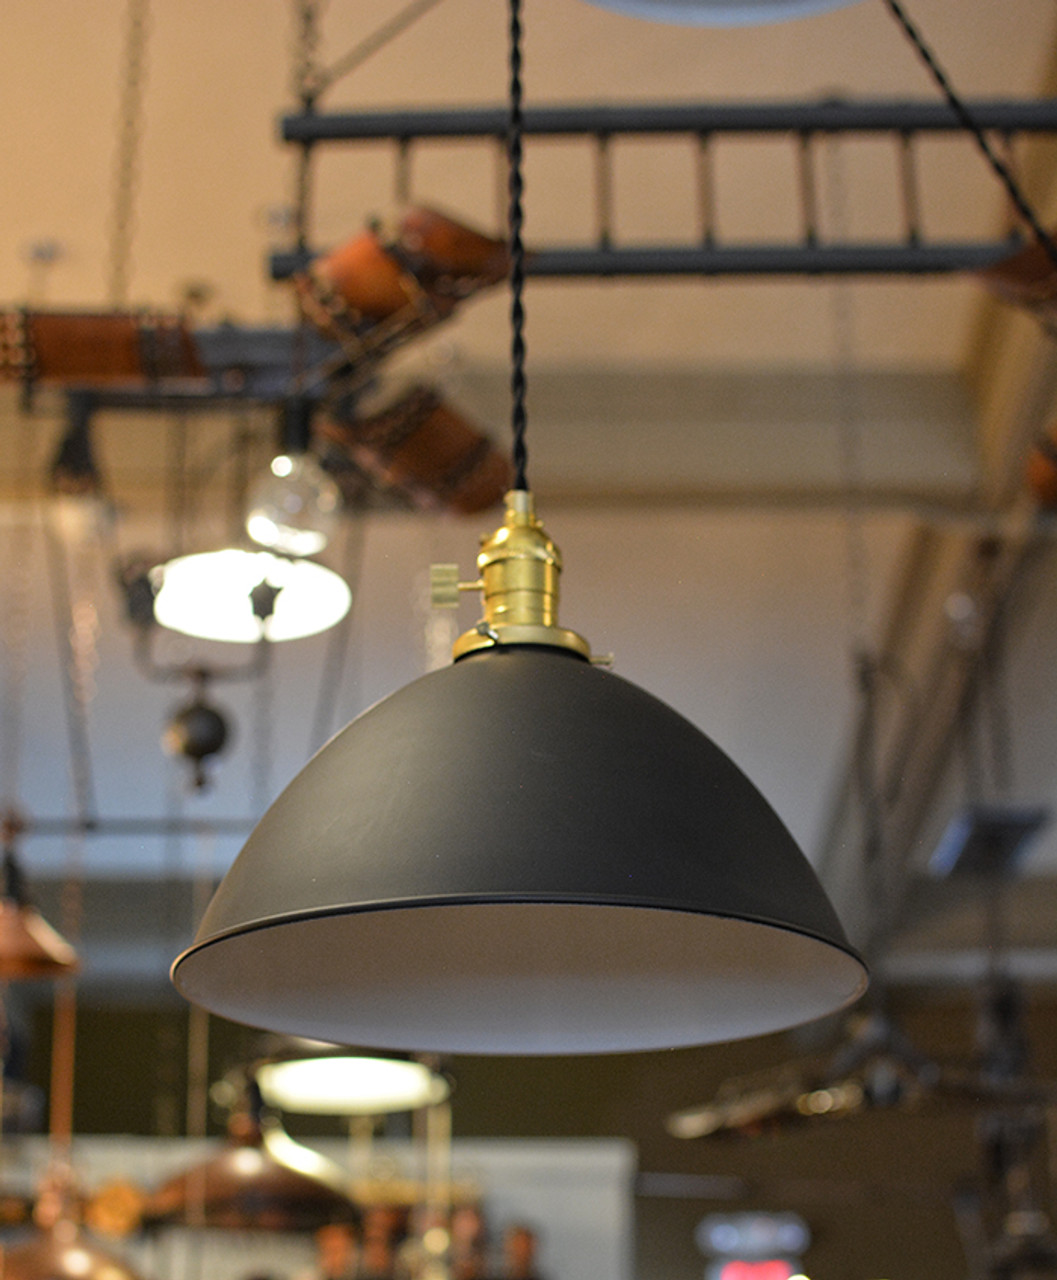 Lamps Antique Machine Age Steel Lamps: Electric Latest Collection Of Vintage Industrial Pendant Light W/ Flat Lamp Shade